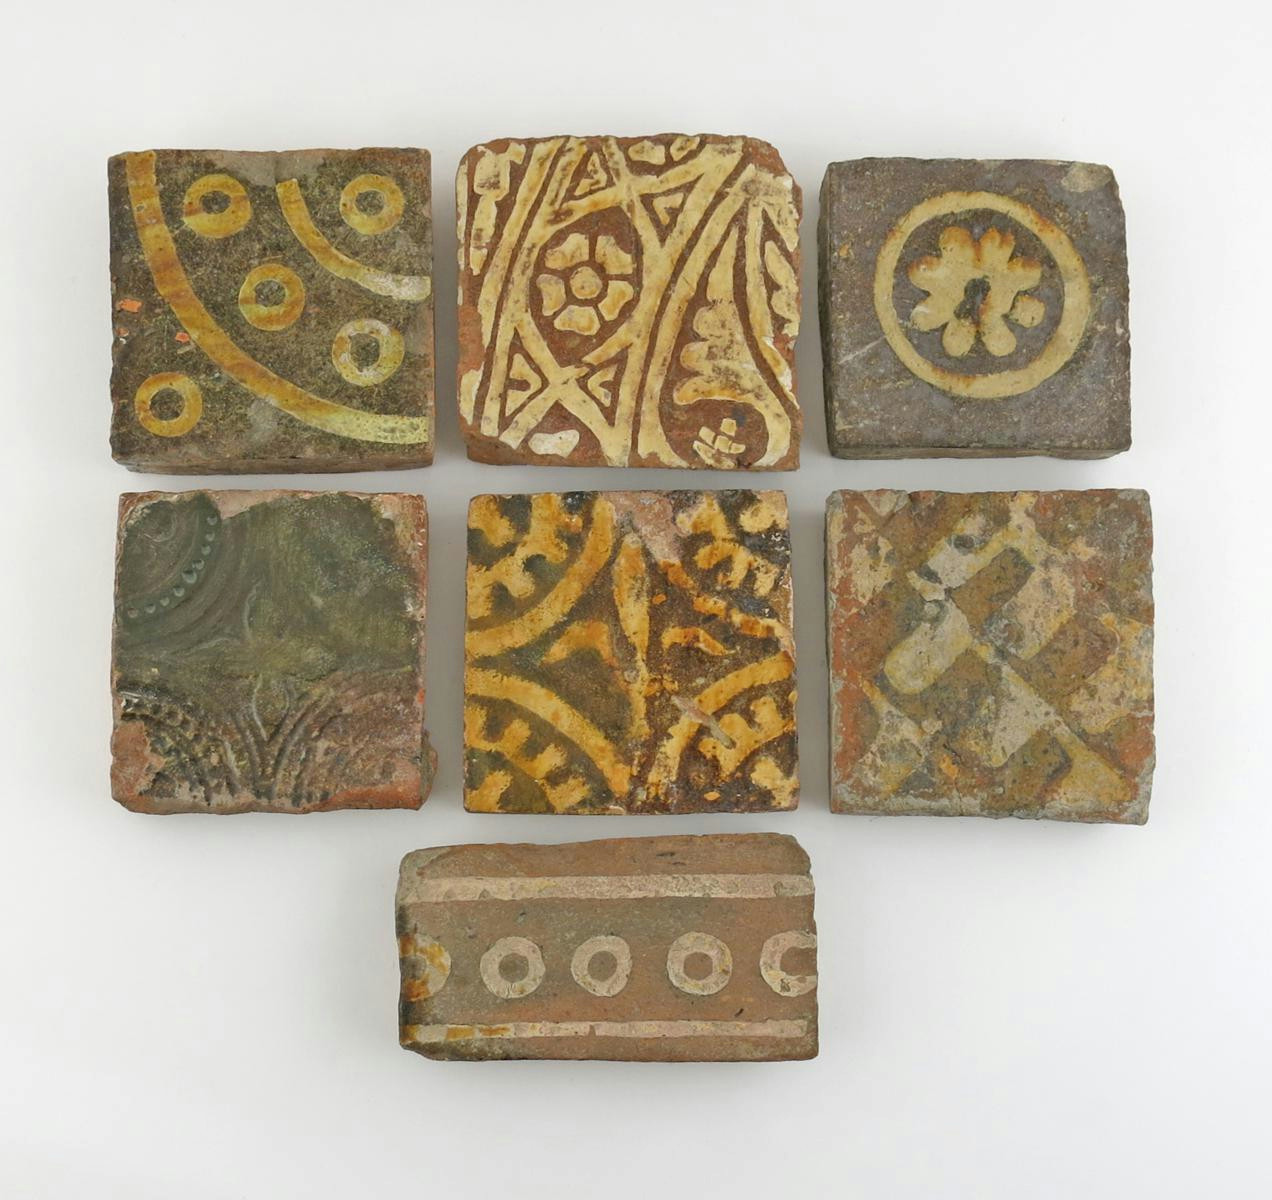 Seven medieval encaustic floor tiles c13th 15th century lot 217 english and european ceramics and glass lot 217 dailygadgetfo Images